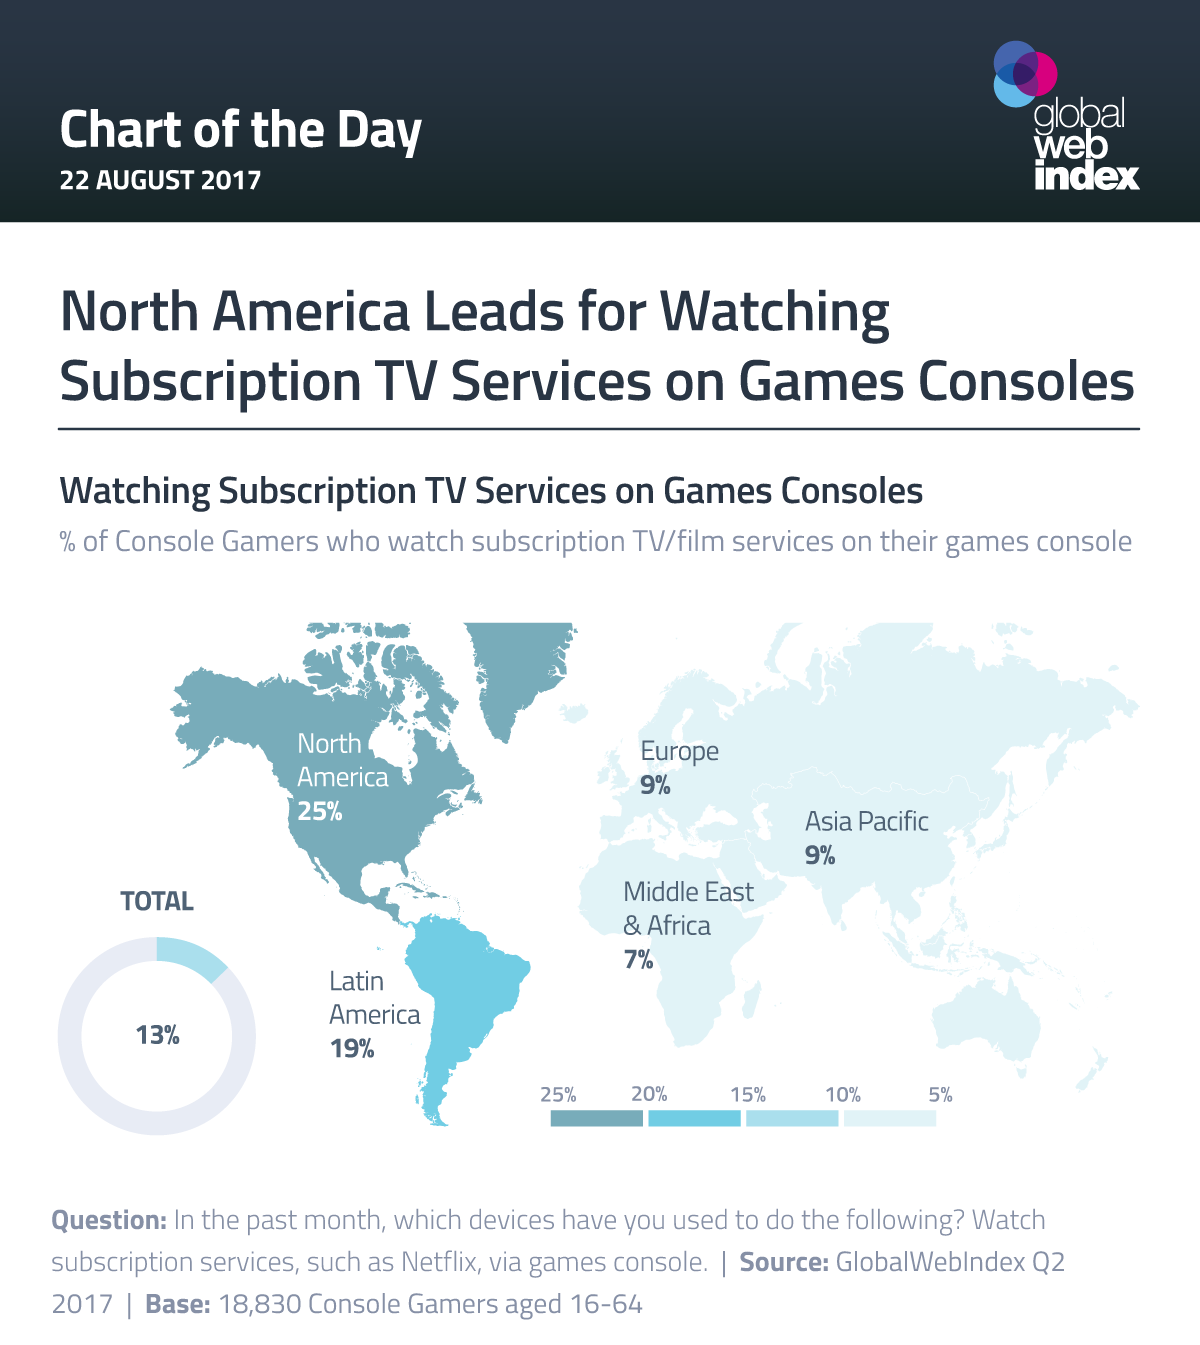 North America Leads for Watching Subscription TV Services on Games Consoles